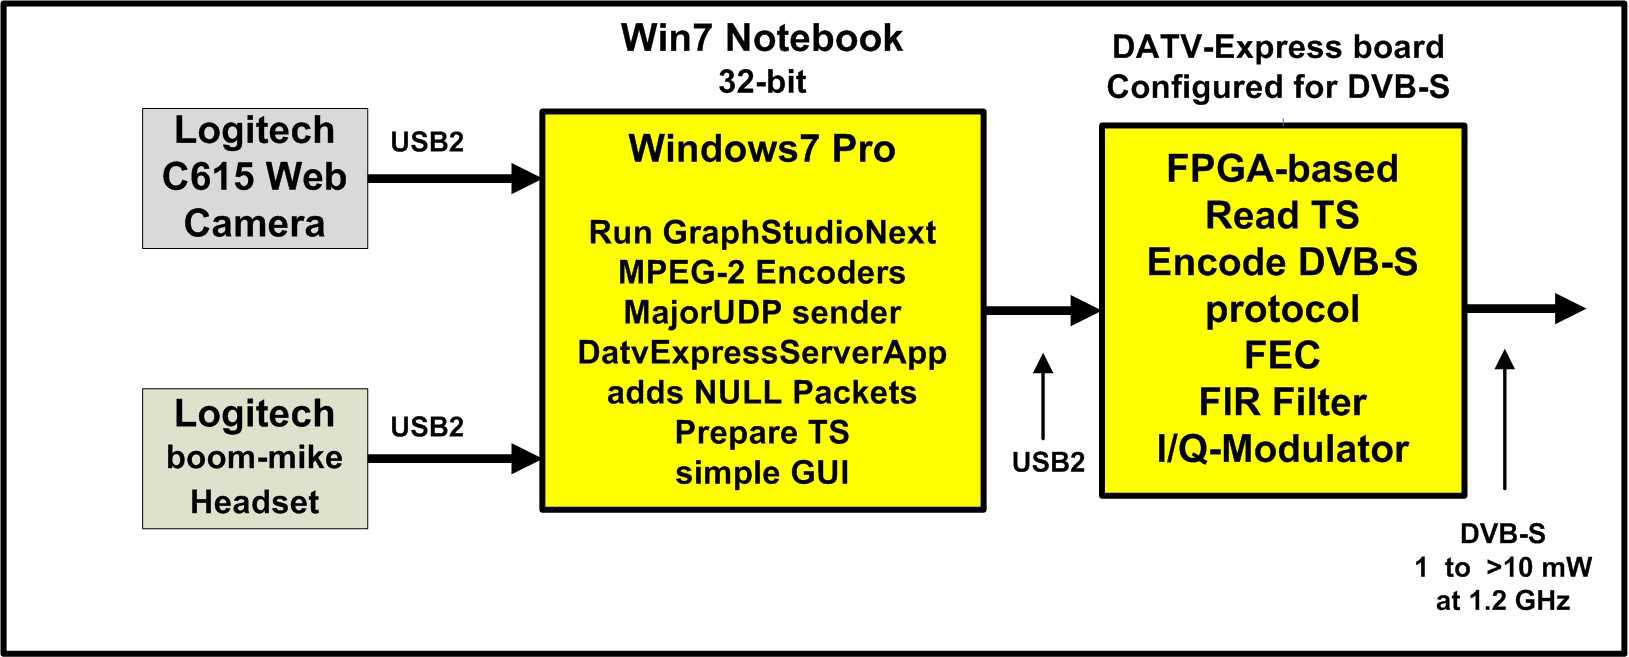 Datv Express Project July Update Report Batc Forum I Q Modulator Block Diagram The Board To Be Connected Directly A Windows Computer Running Win7 Or Win81 Figure 5 Shows For My Testing Set Up